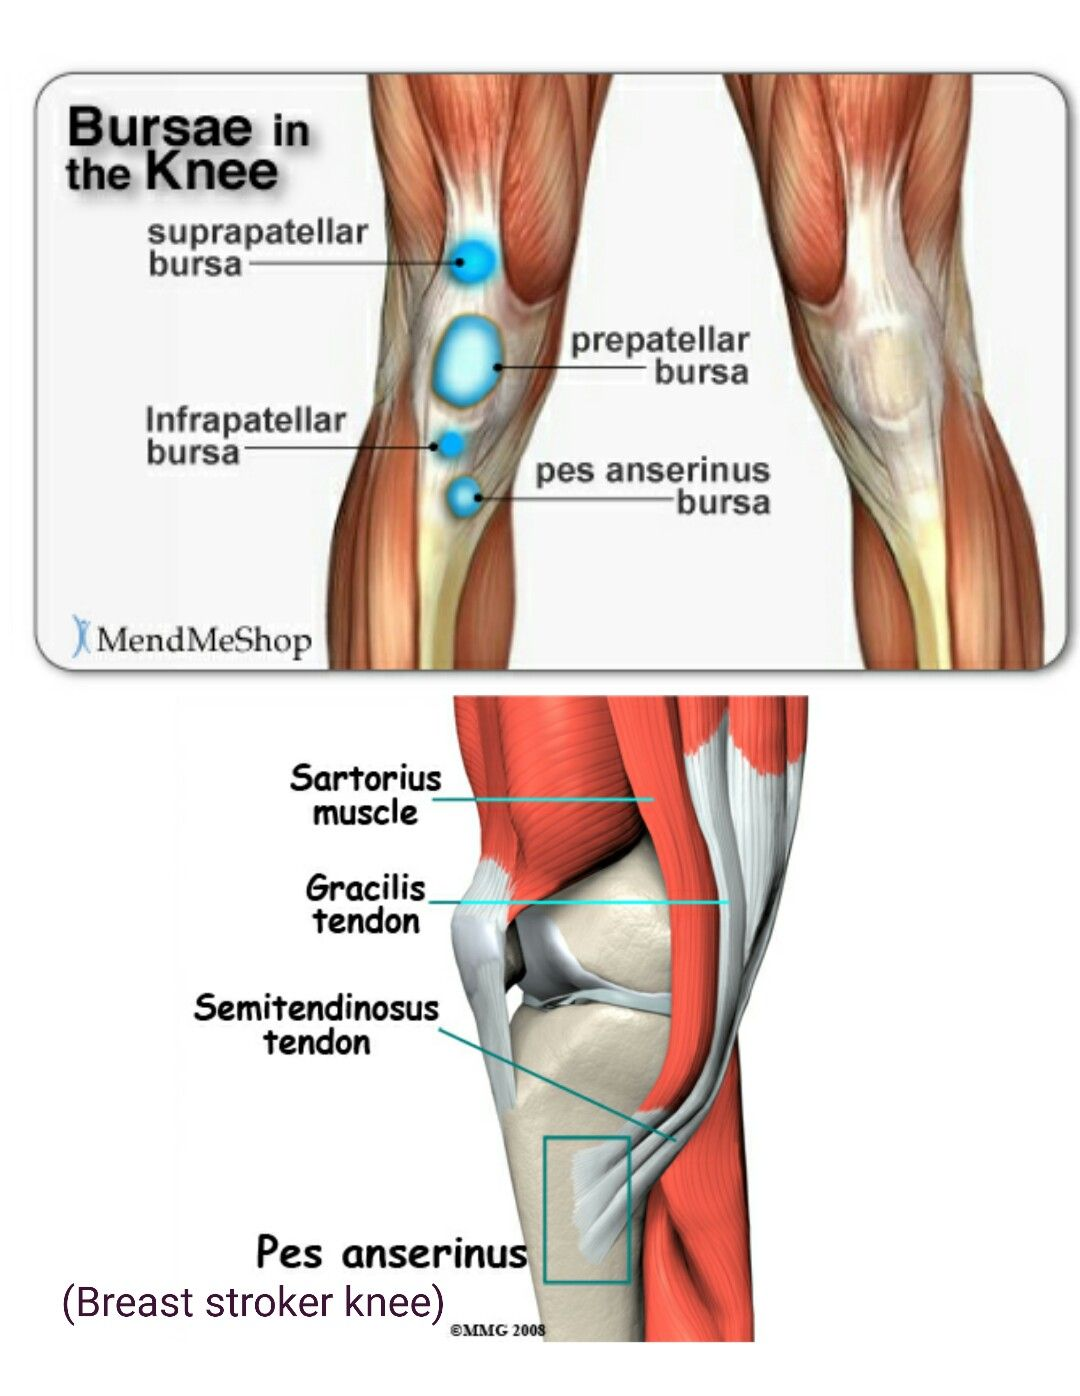 Bursae In The Knee Orthopedics Pinterest